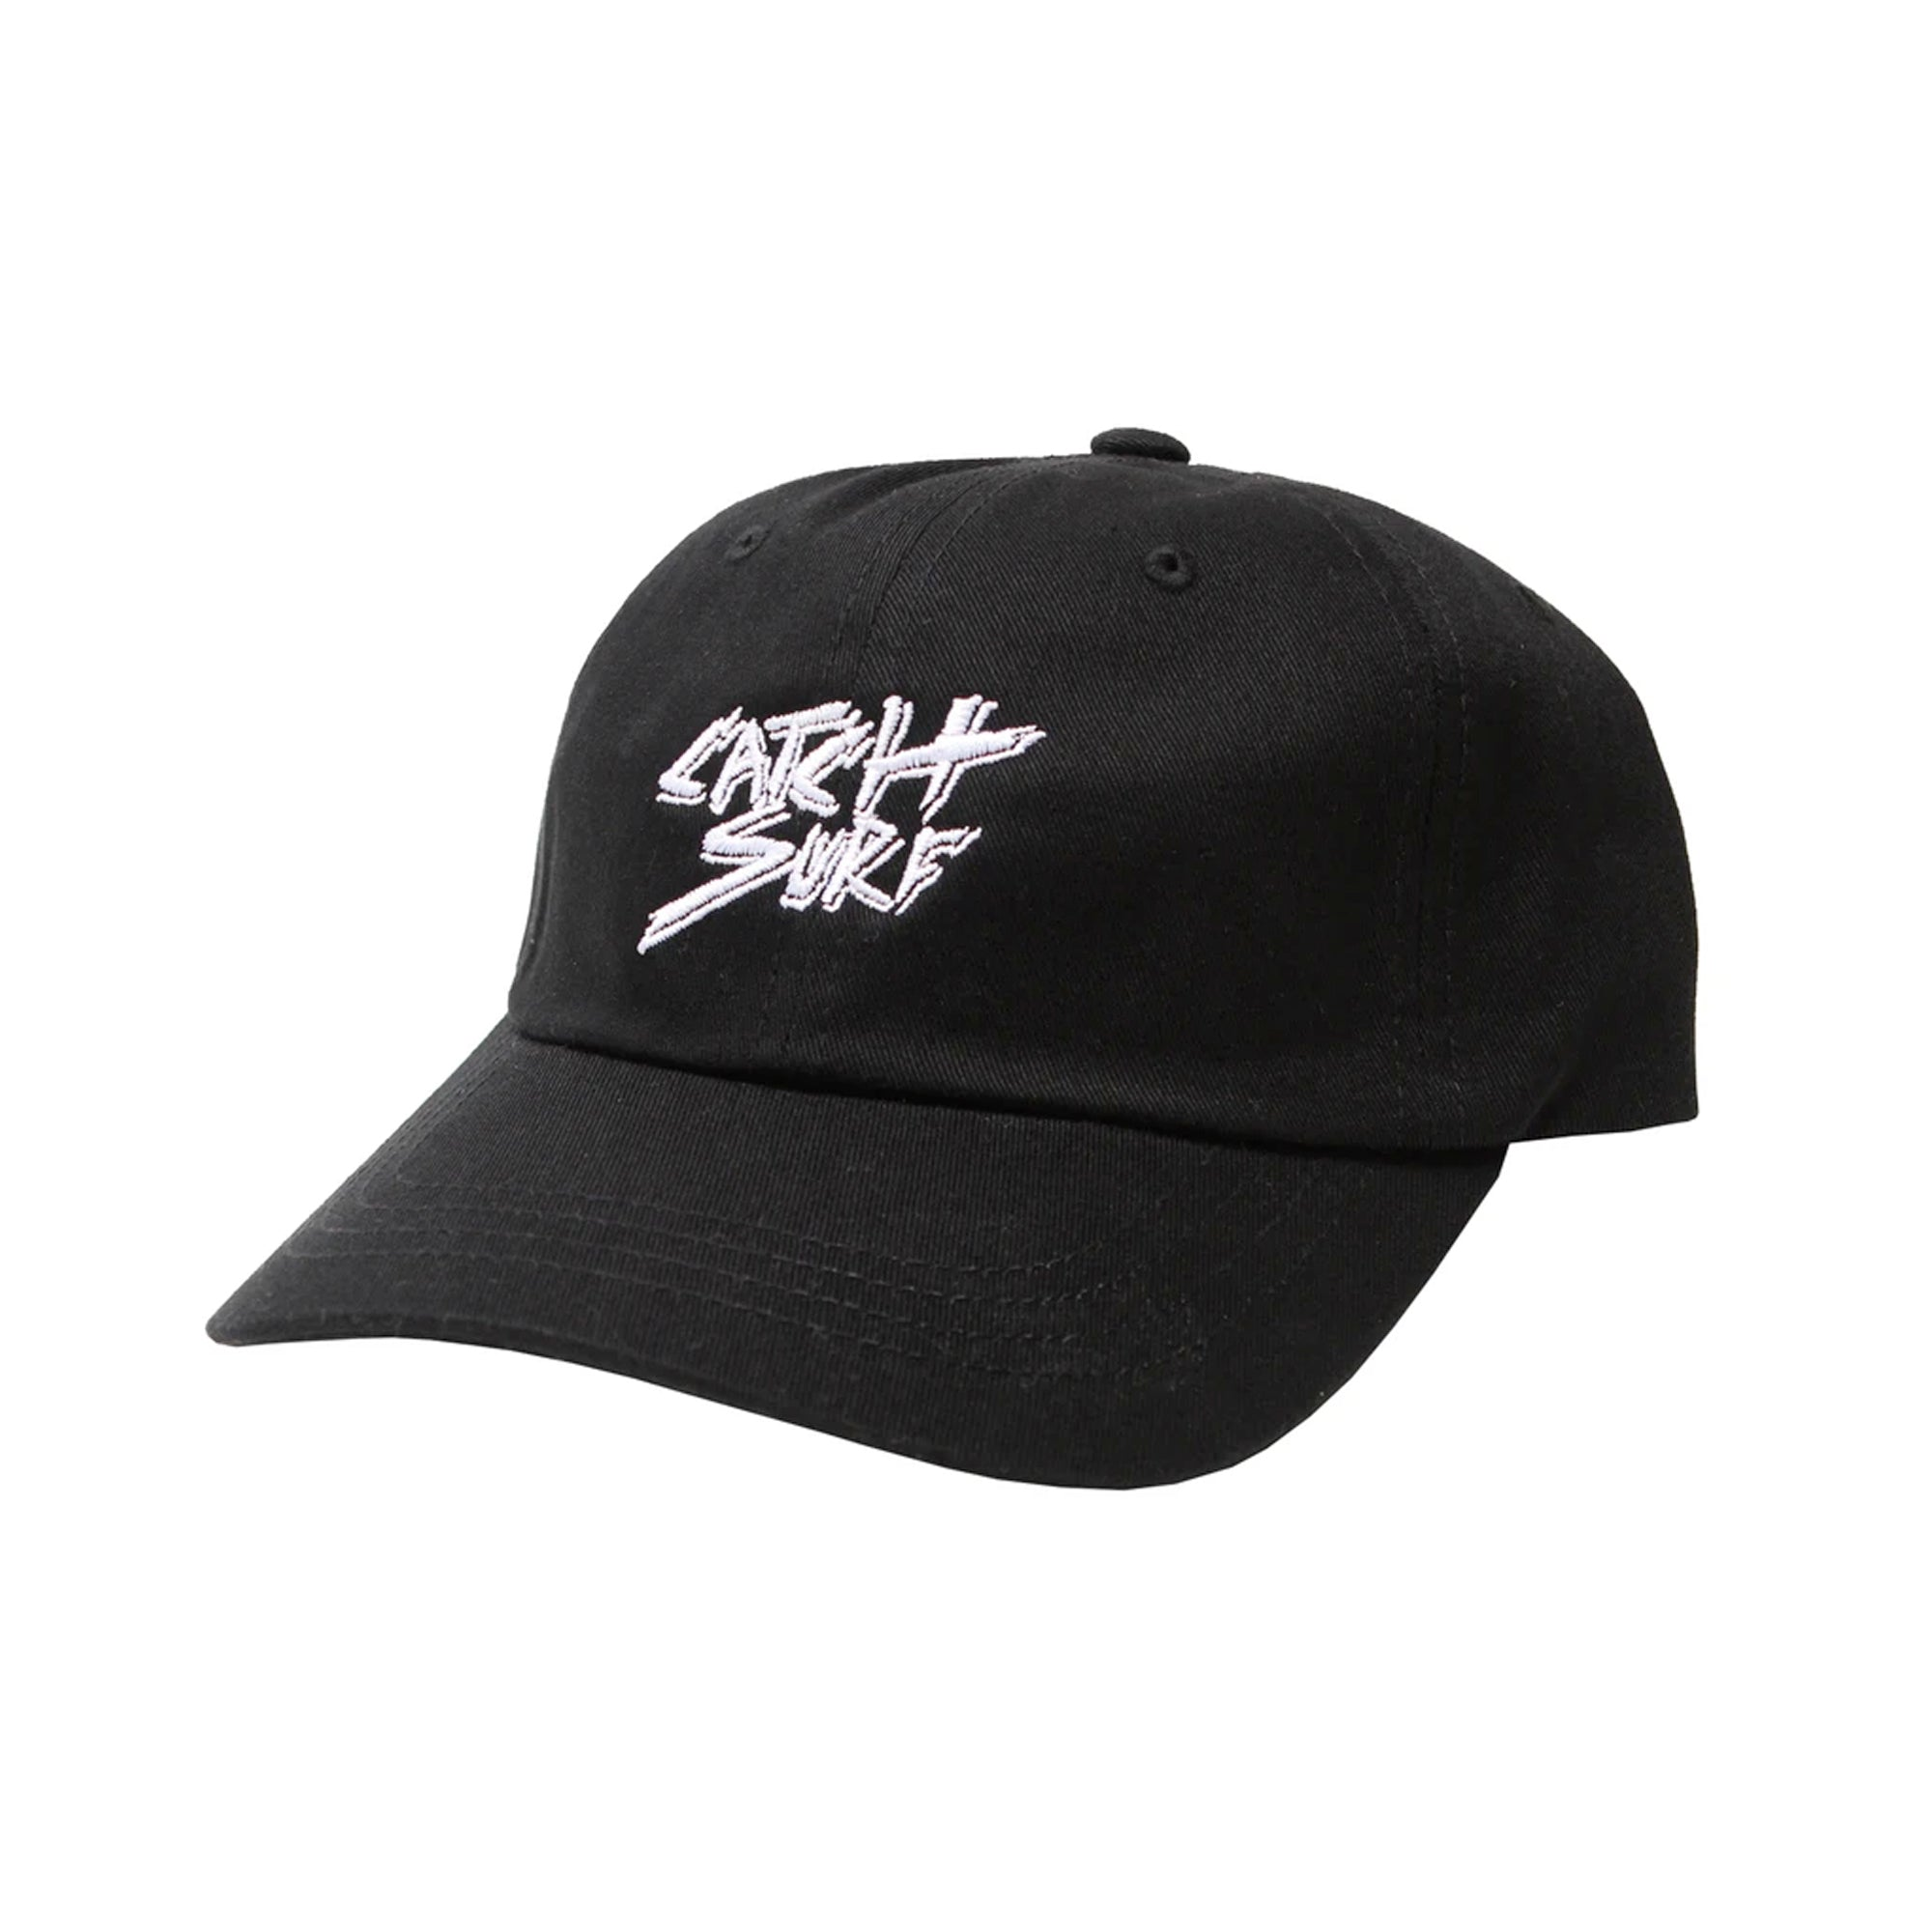 Catch Surf Slash Men's Hat